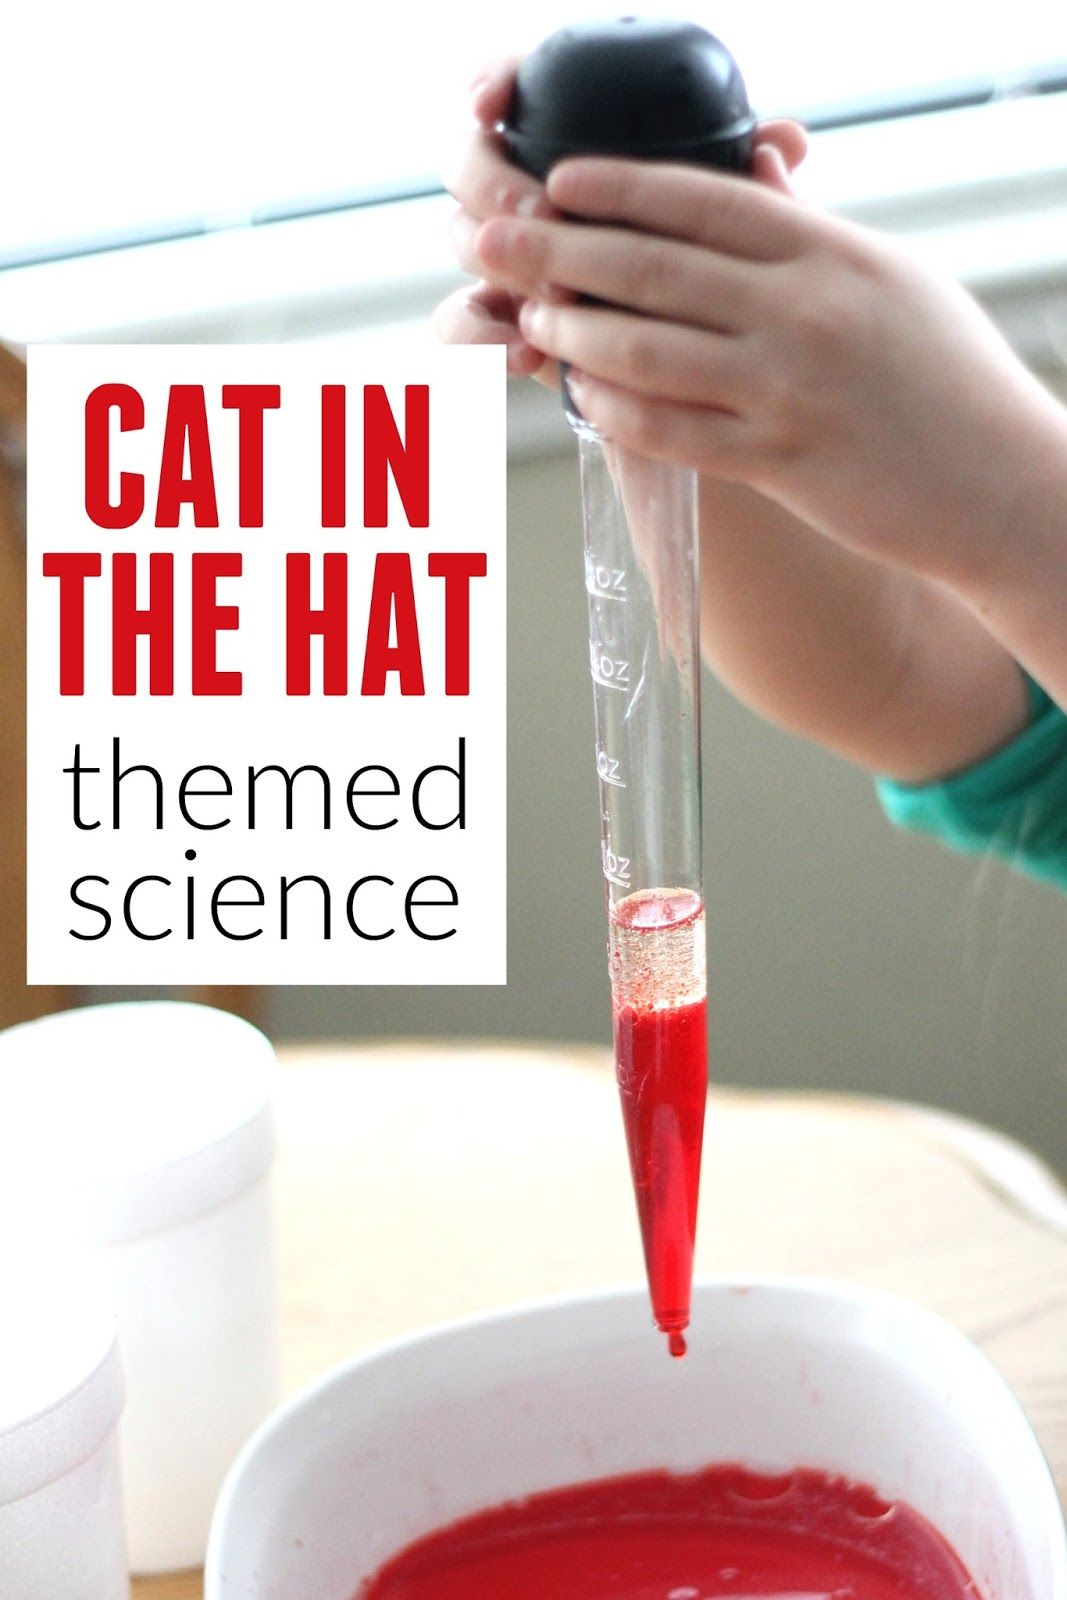 Cat in the Hat Science Dr seuss activities, Dr seuss day